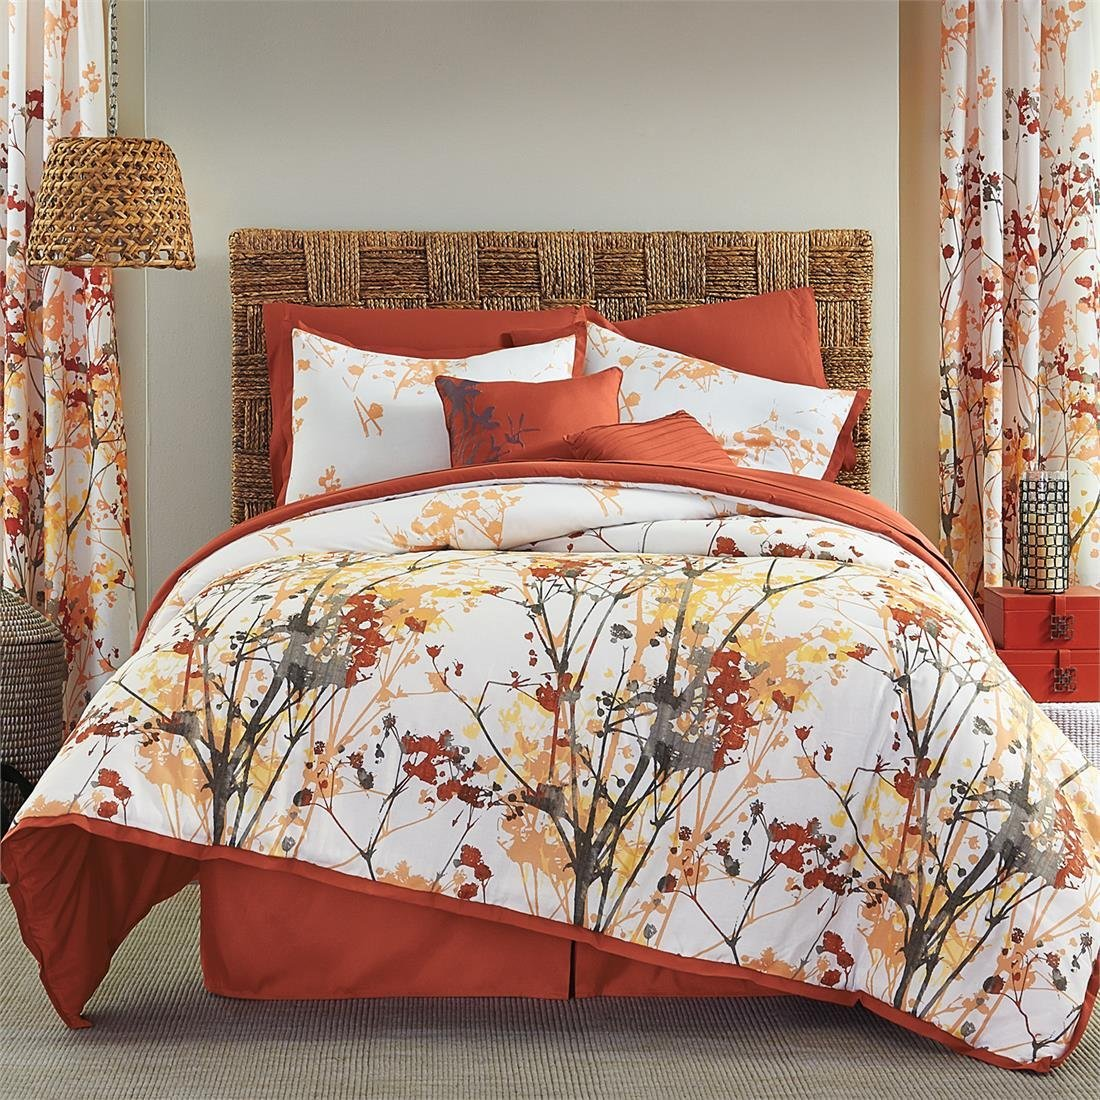 paisley chezmoi embroidery naomi set and kitchen collection home com queen amazon bedding floral comforter piece grey navy dp orange